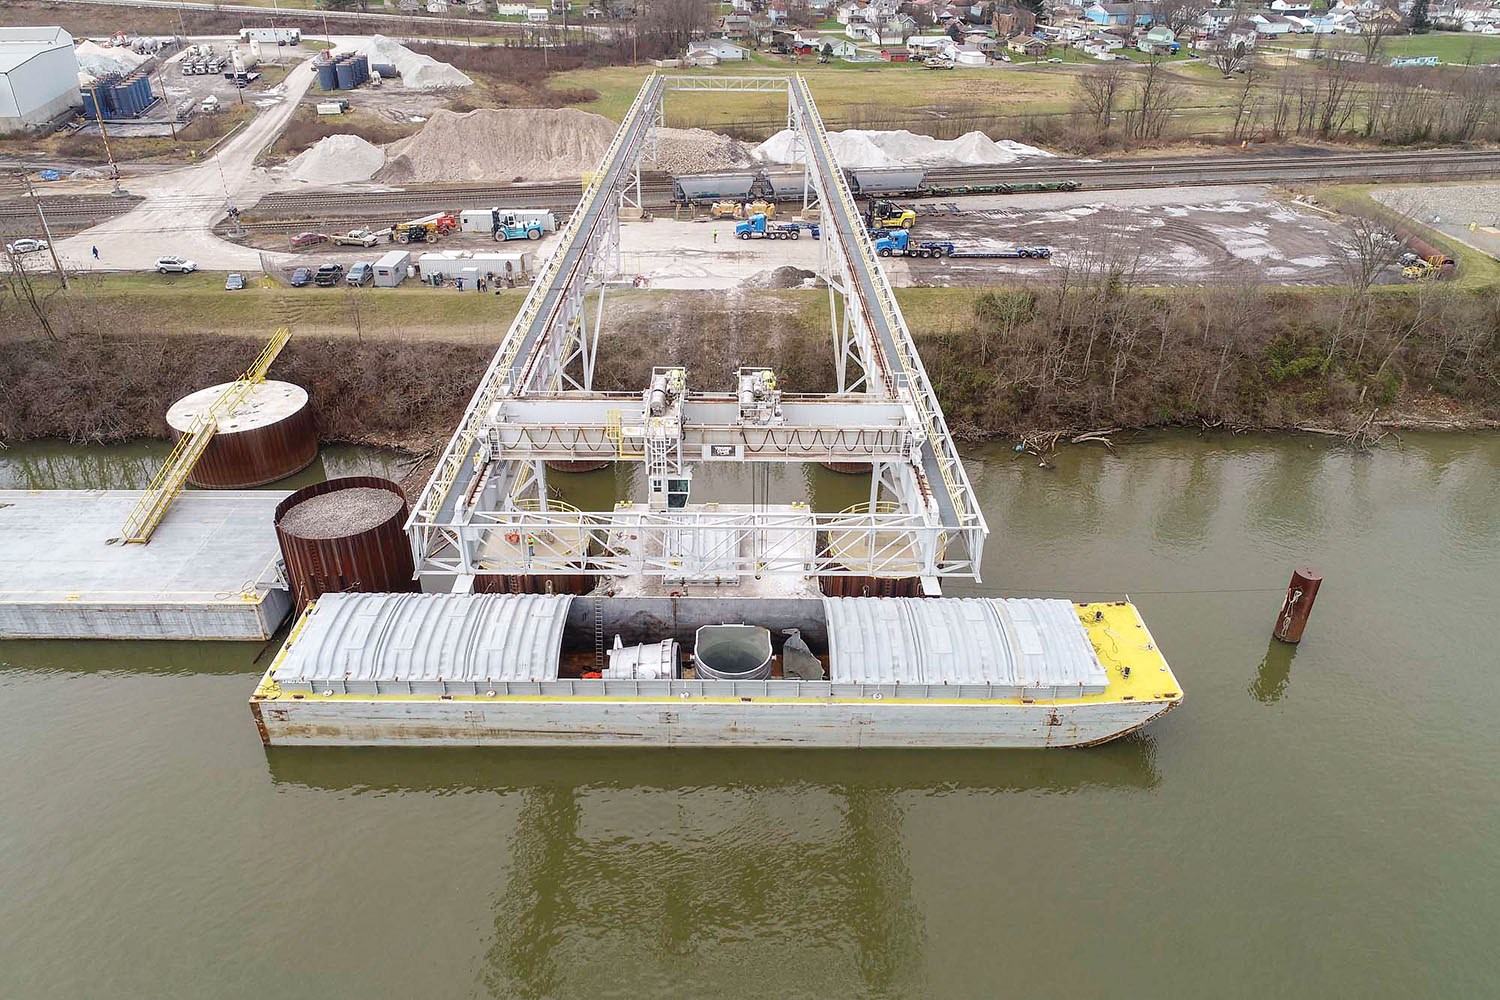 Once the ladles arrived in the United States from China, the vessel carrying them took 21 days to reach the Wellsville Intermodal Facility from New Orleans. (Photo courtesy of Columbiana County Port Authority)